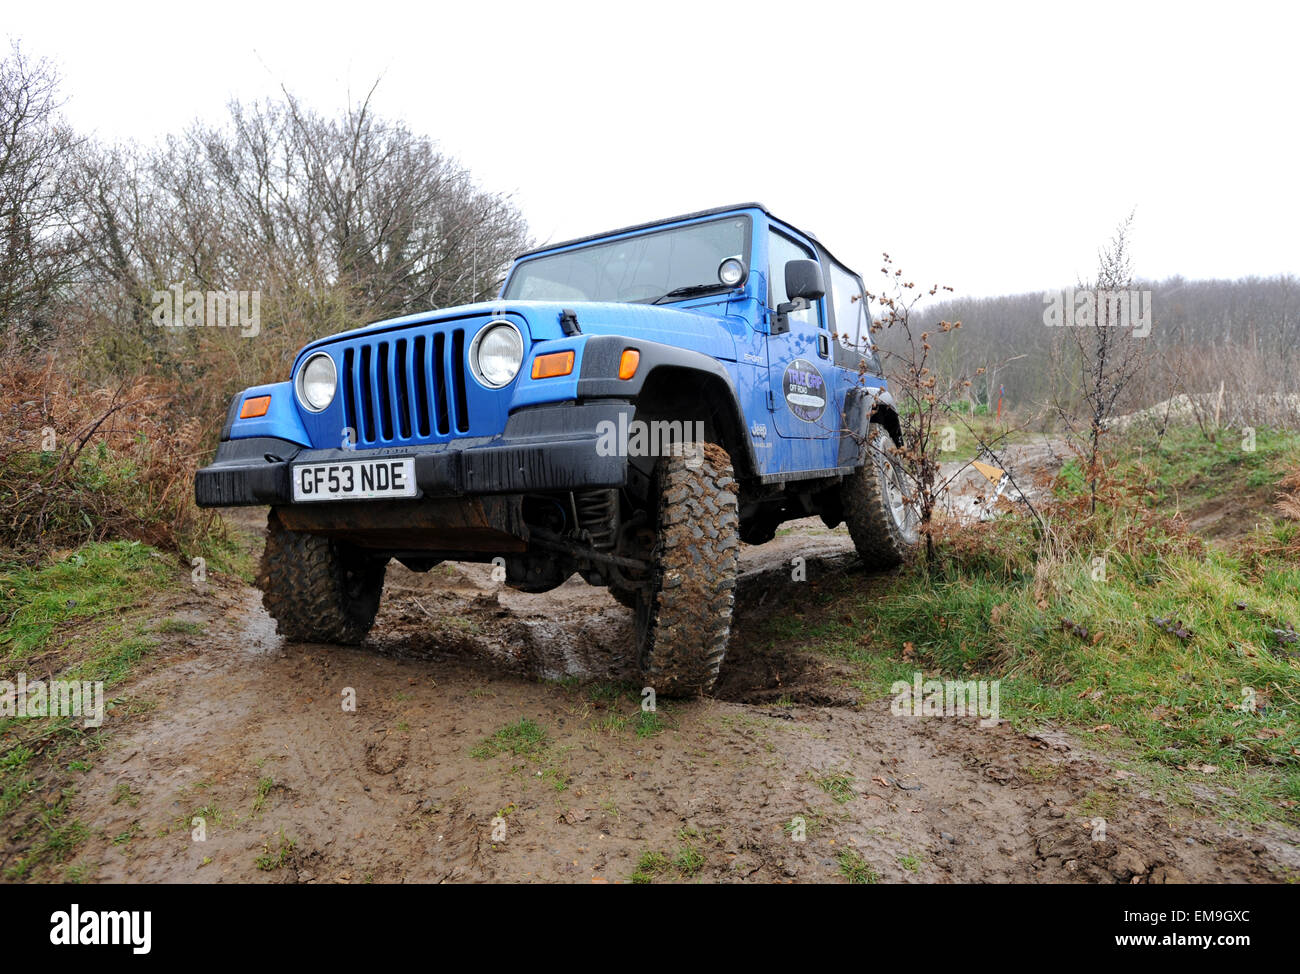 Modified Jeep Wrangler Driving Off Road In Deep Wet Mud And Water